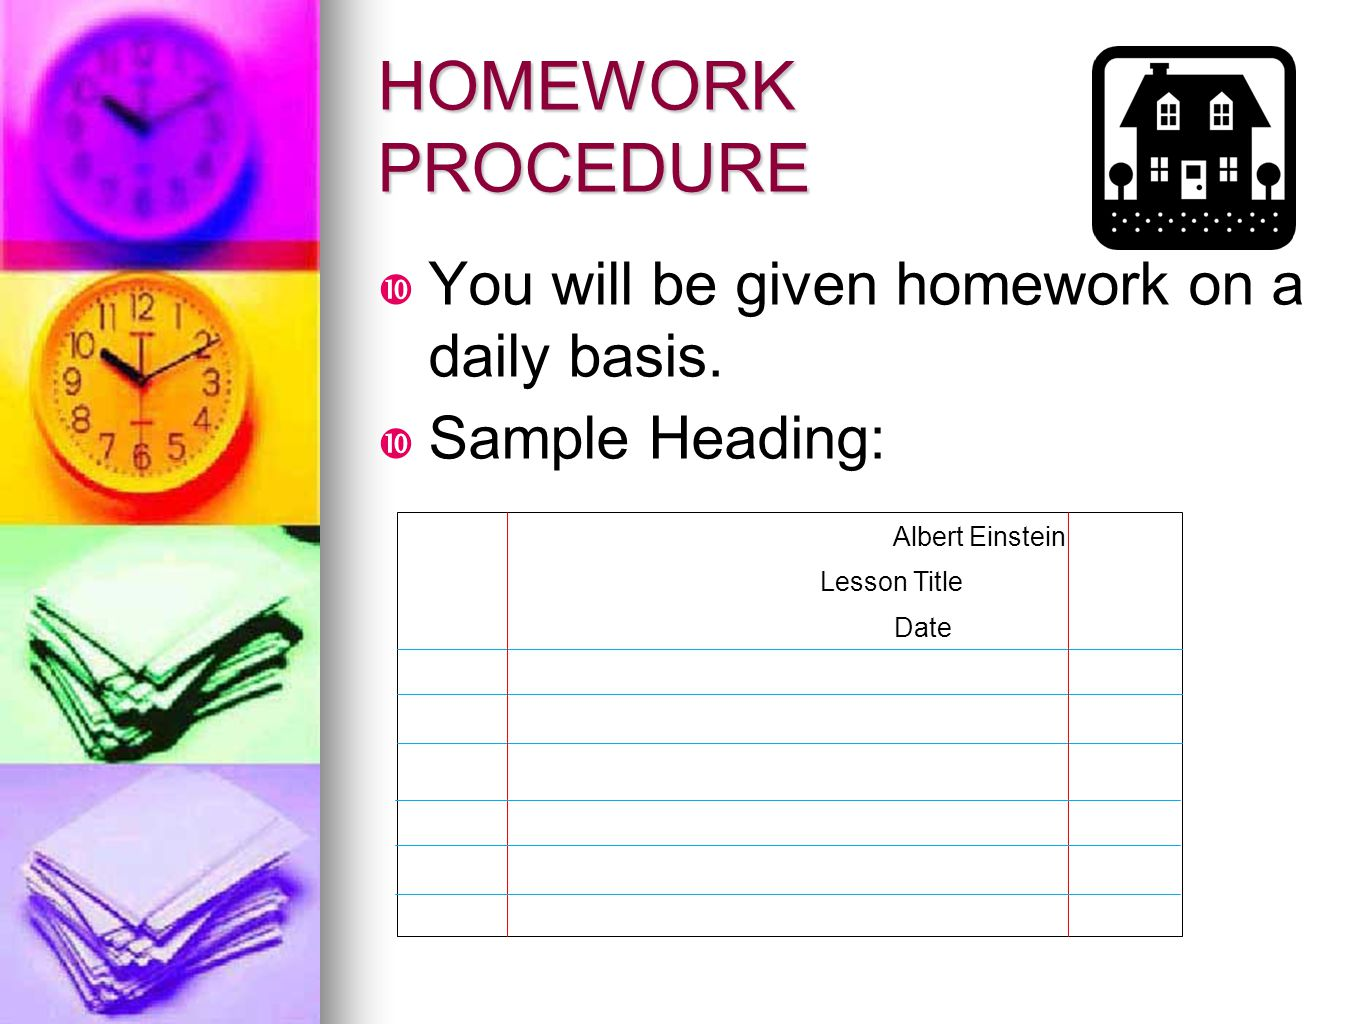 HOMEWORK PROCEDURE You will be given homework on a daily basis.